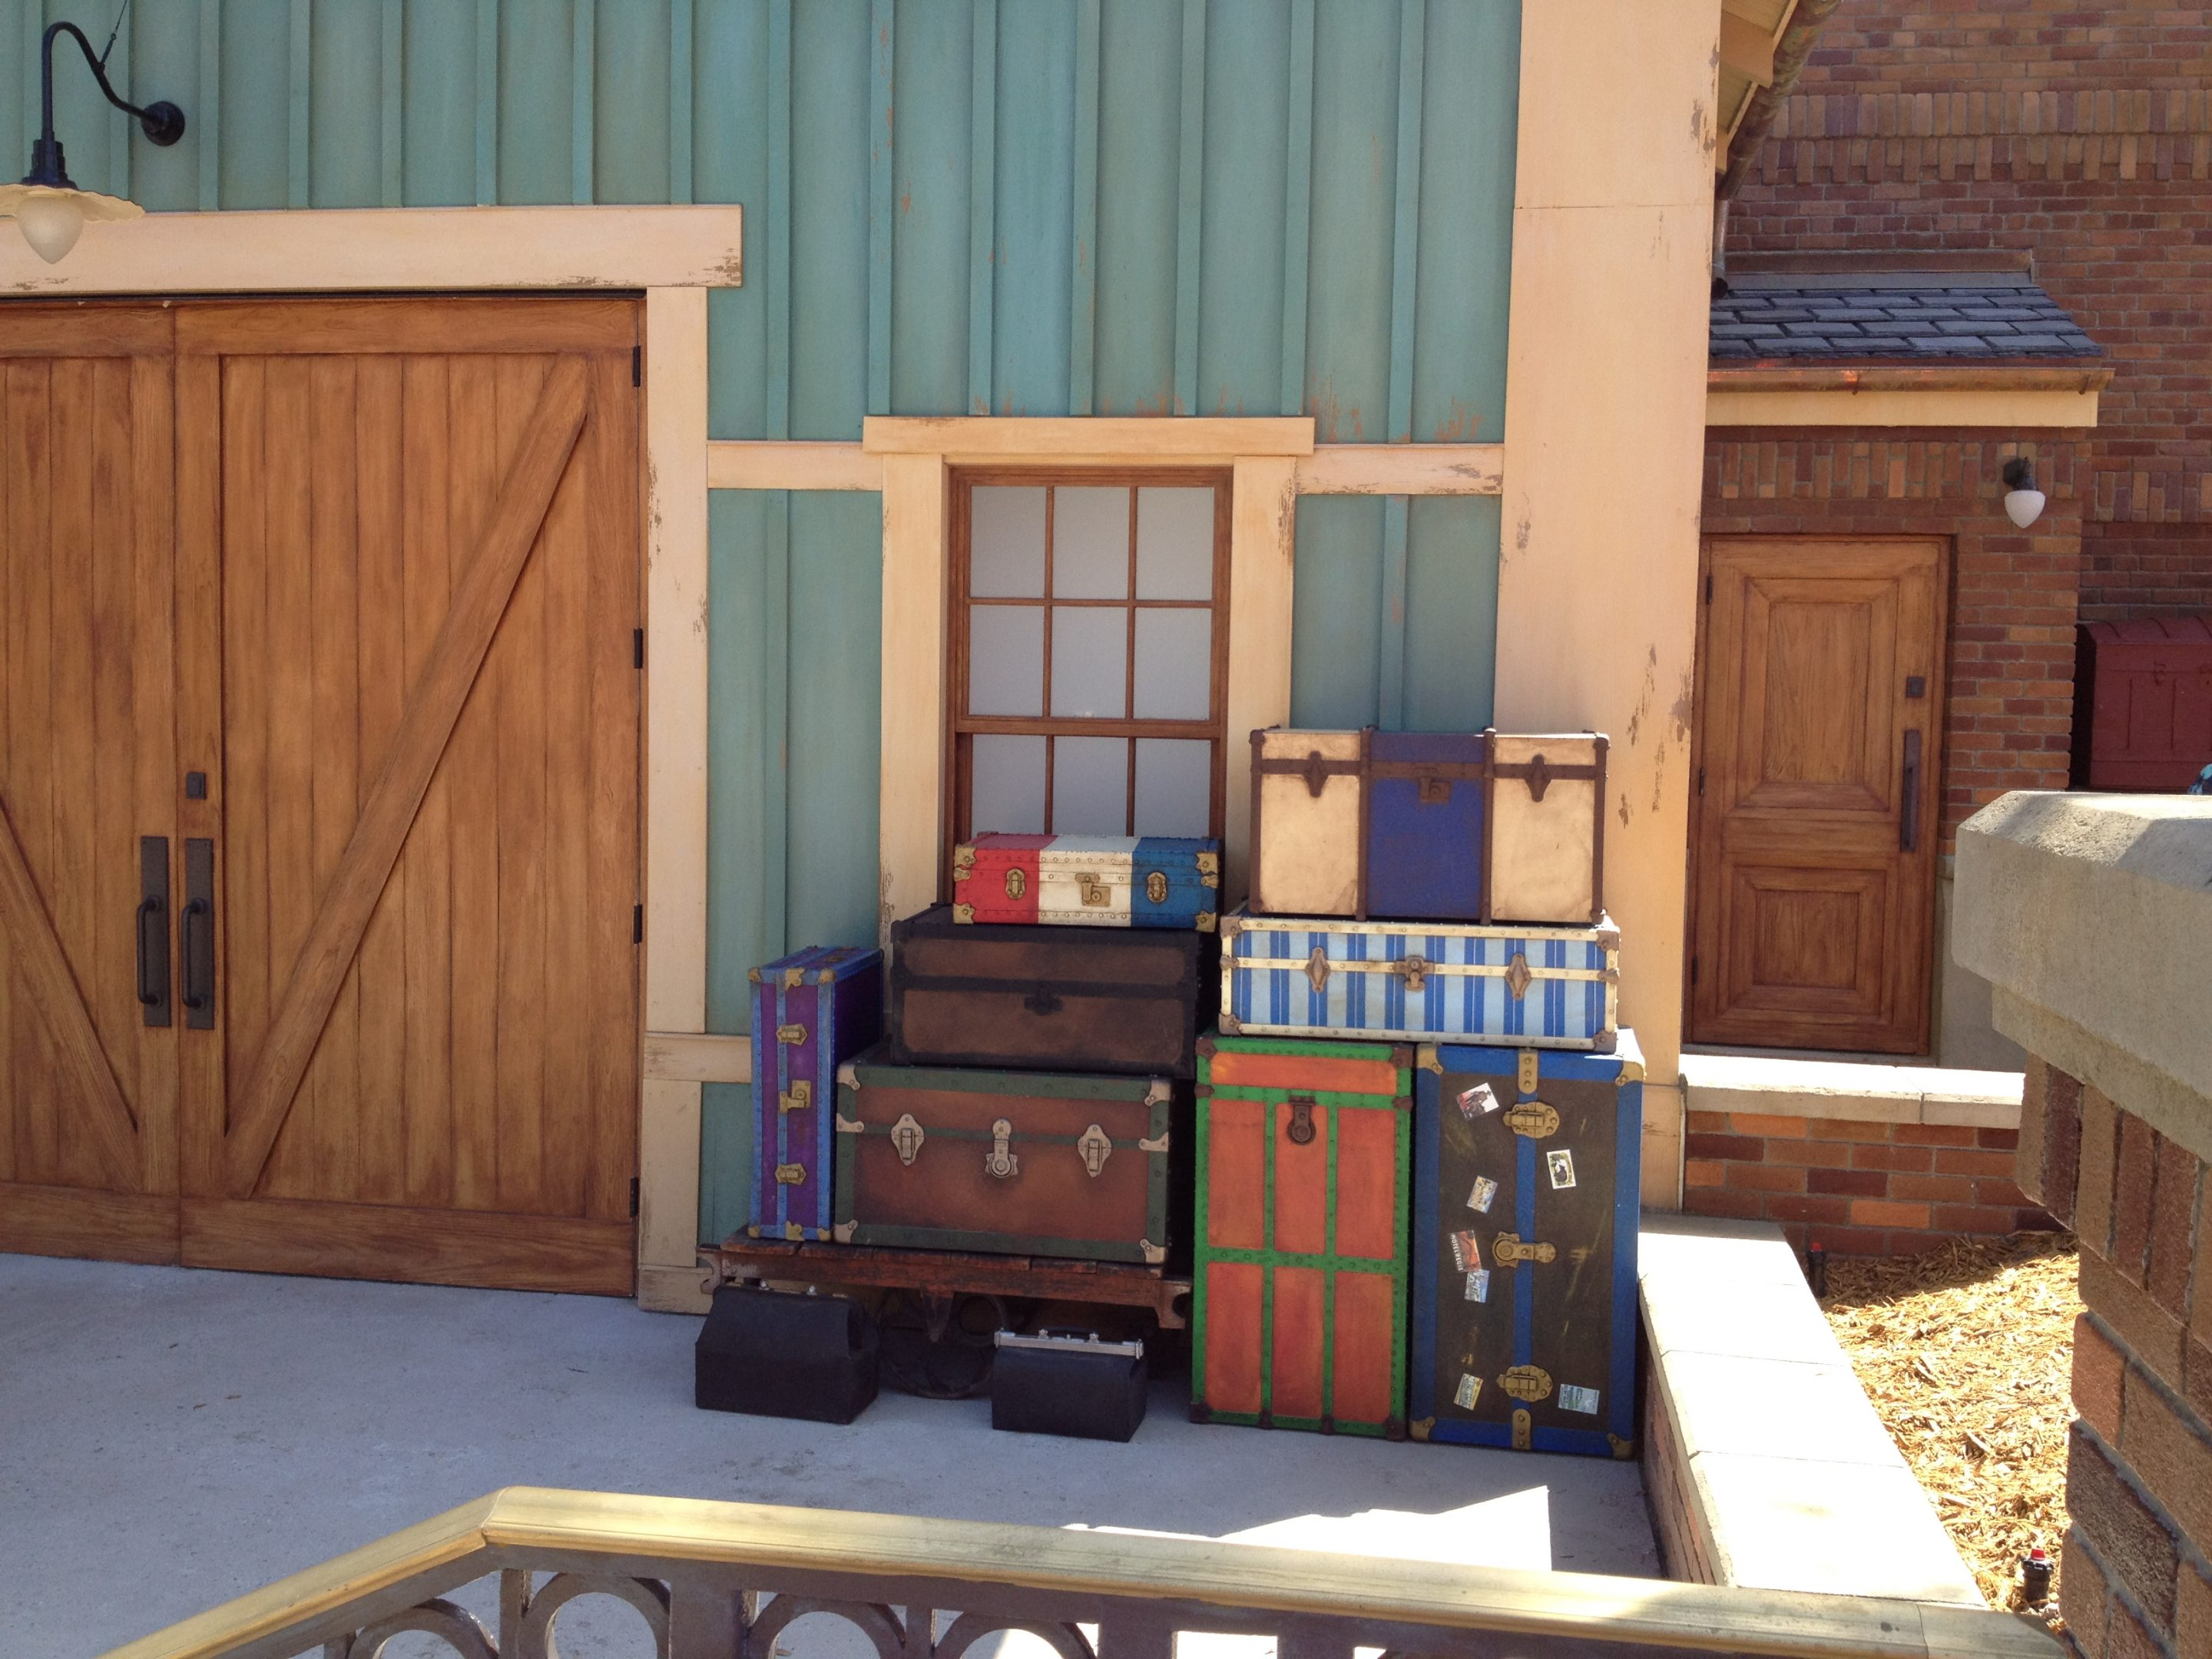 Hidden Details in Storybook Circus in the New Fantasyland